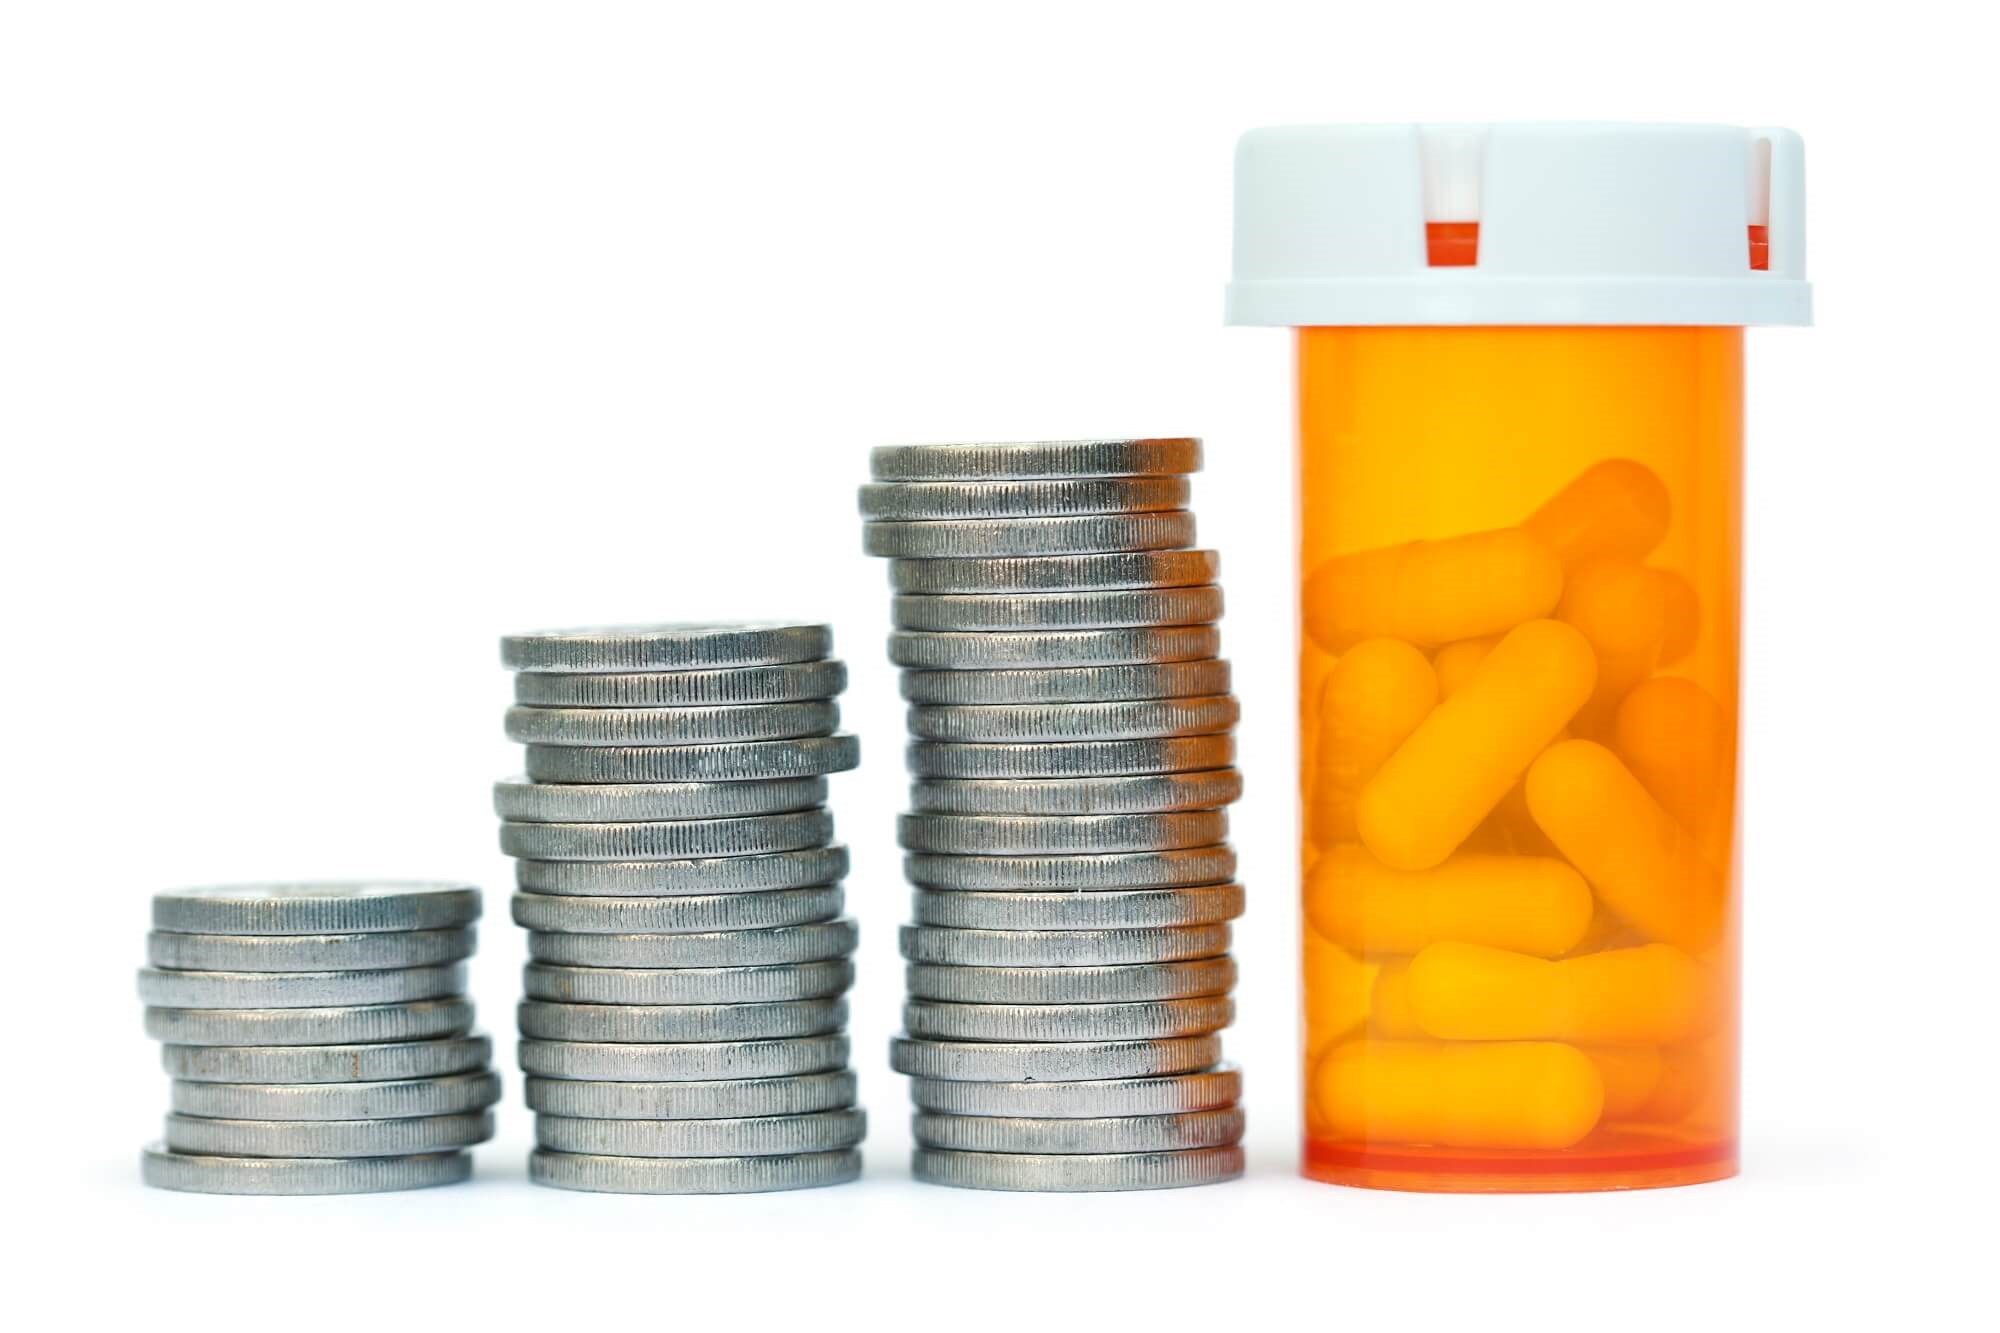 Each month in the US, about 1 million prescriptions are filled for Xarelto, which costs $450 to $540 per month without insurance, depending on the pharmacy.